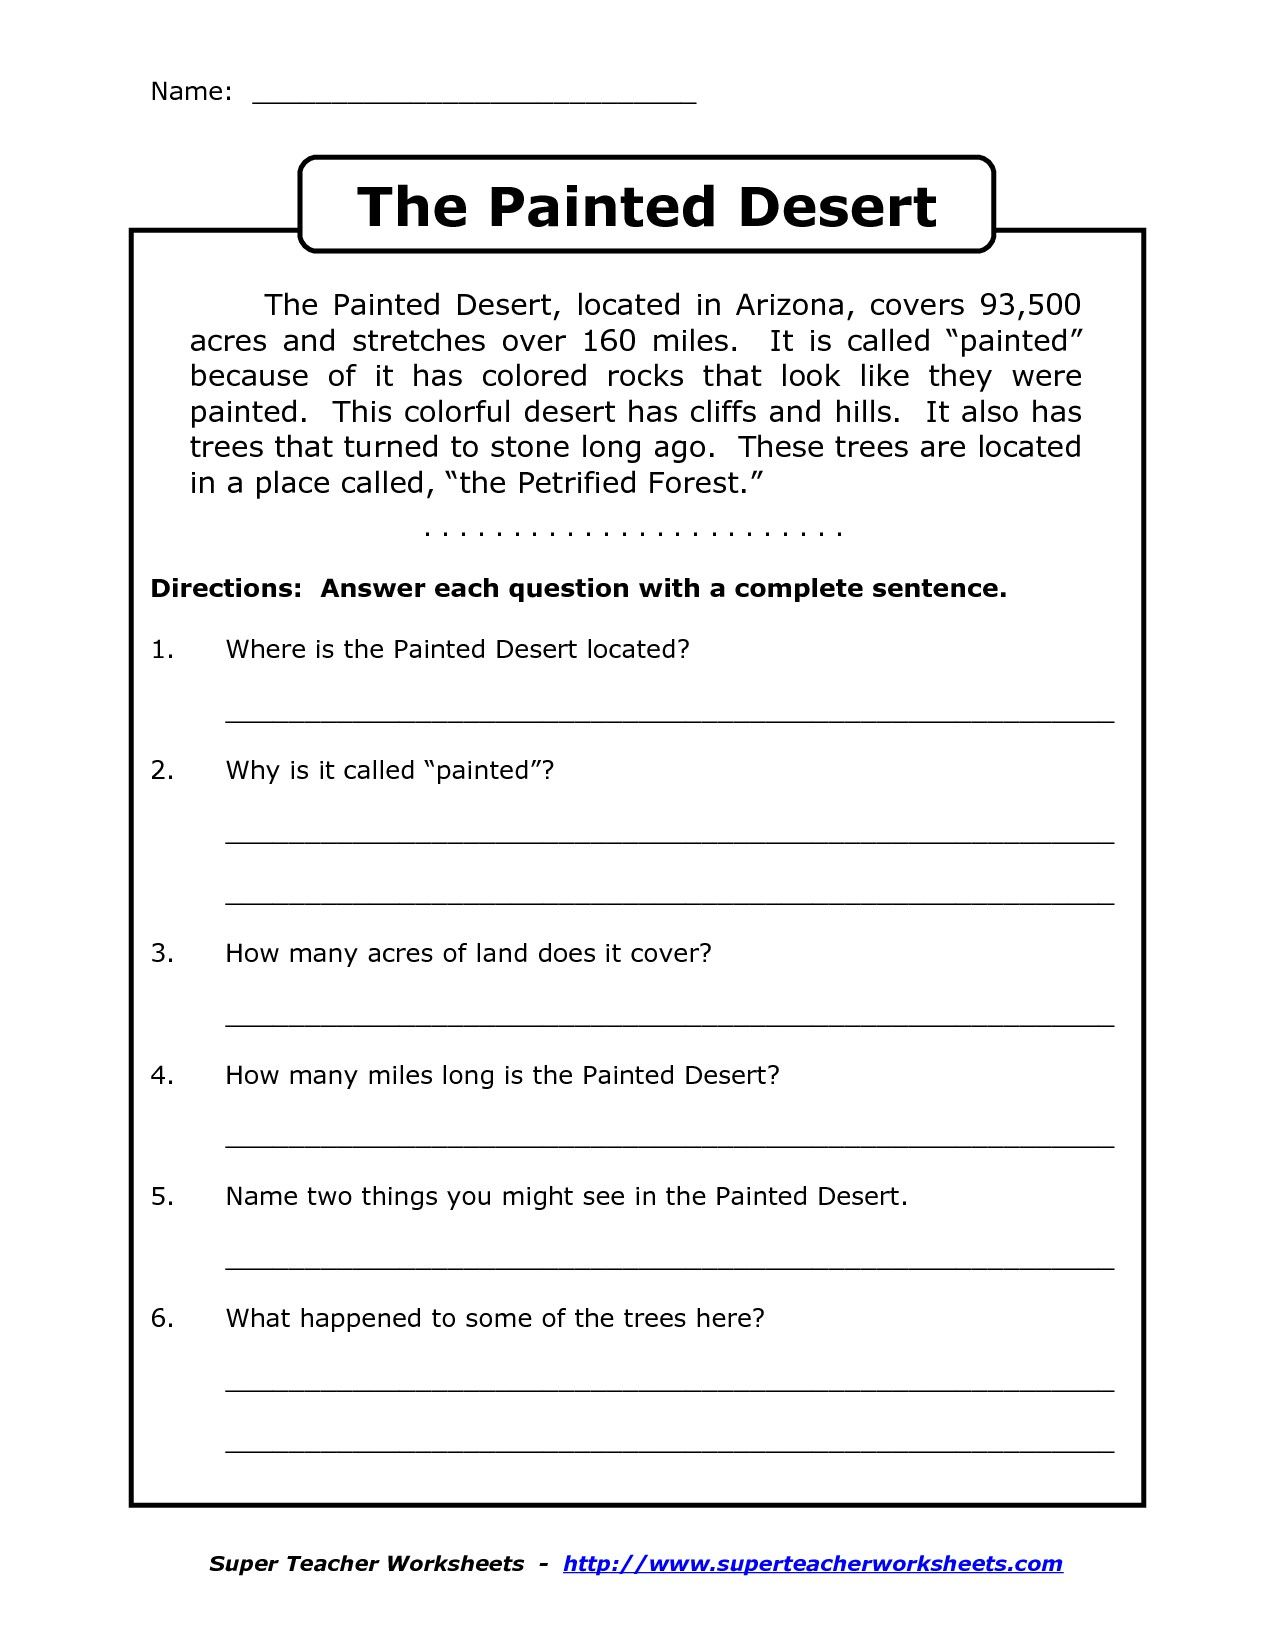 Worksheet Reading Comprehension Second Grade Worksheets 1000 images about tina2 on pinterest reading comprehension and morning work